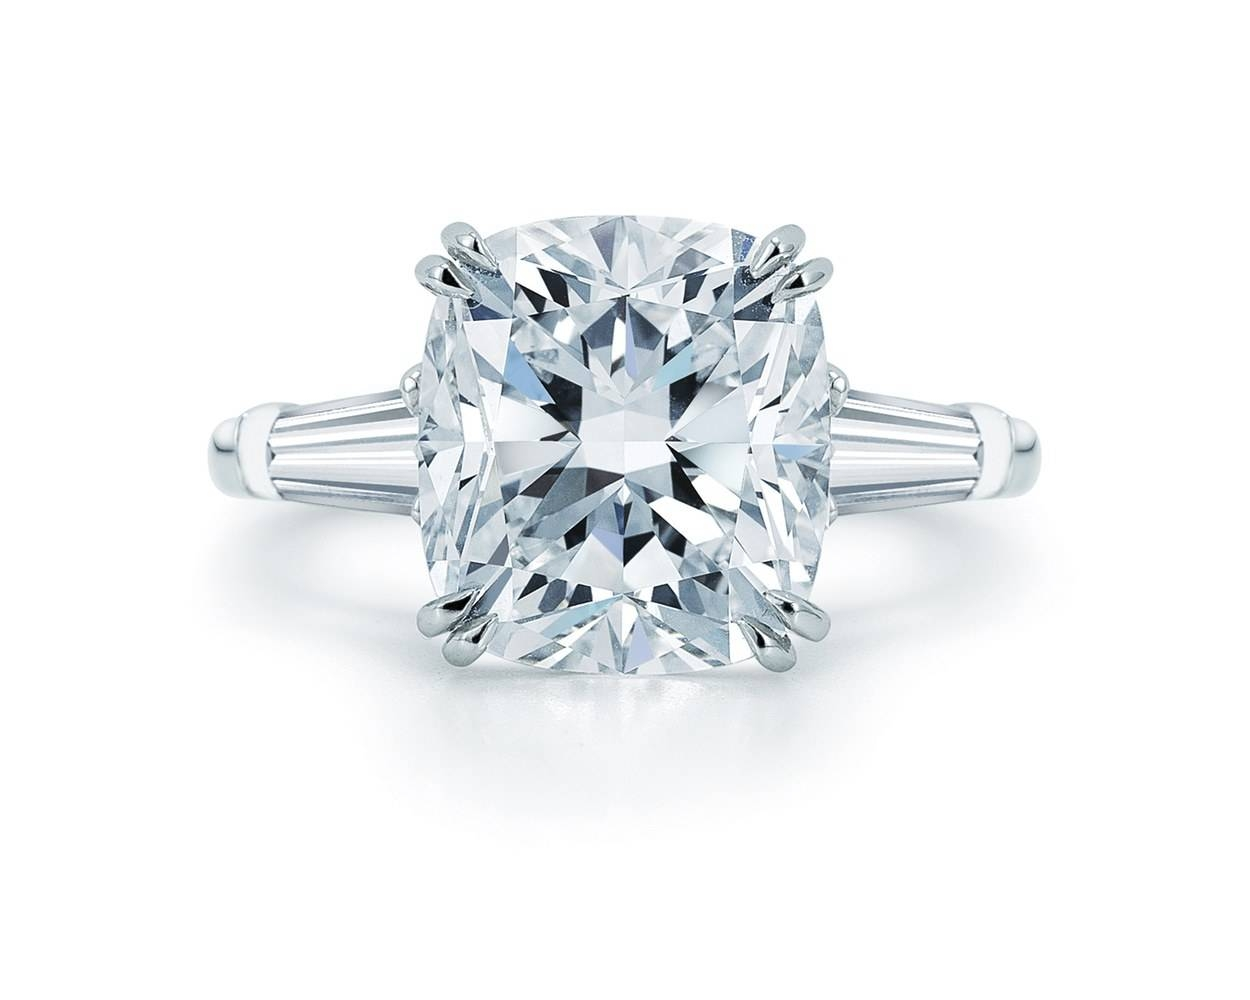 30 Diamond Engagement Rings So Sparkly You'll Need Sunglasses In Round Cushion Cut Diamond Engagement Rings (View 14 of 15)